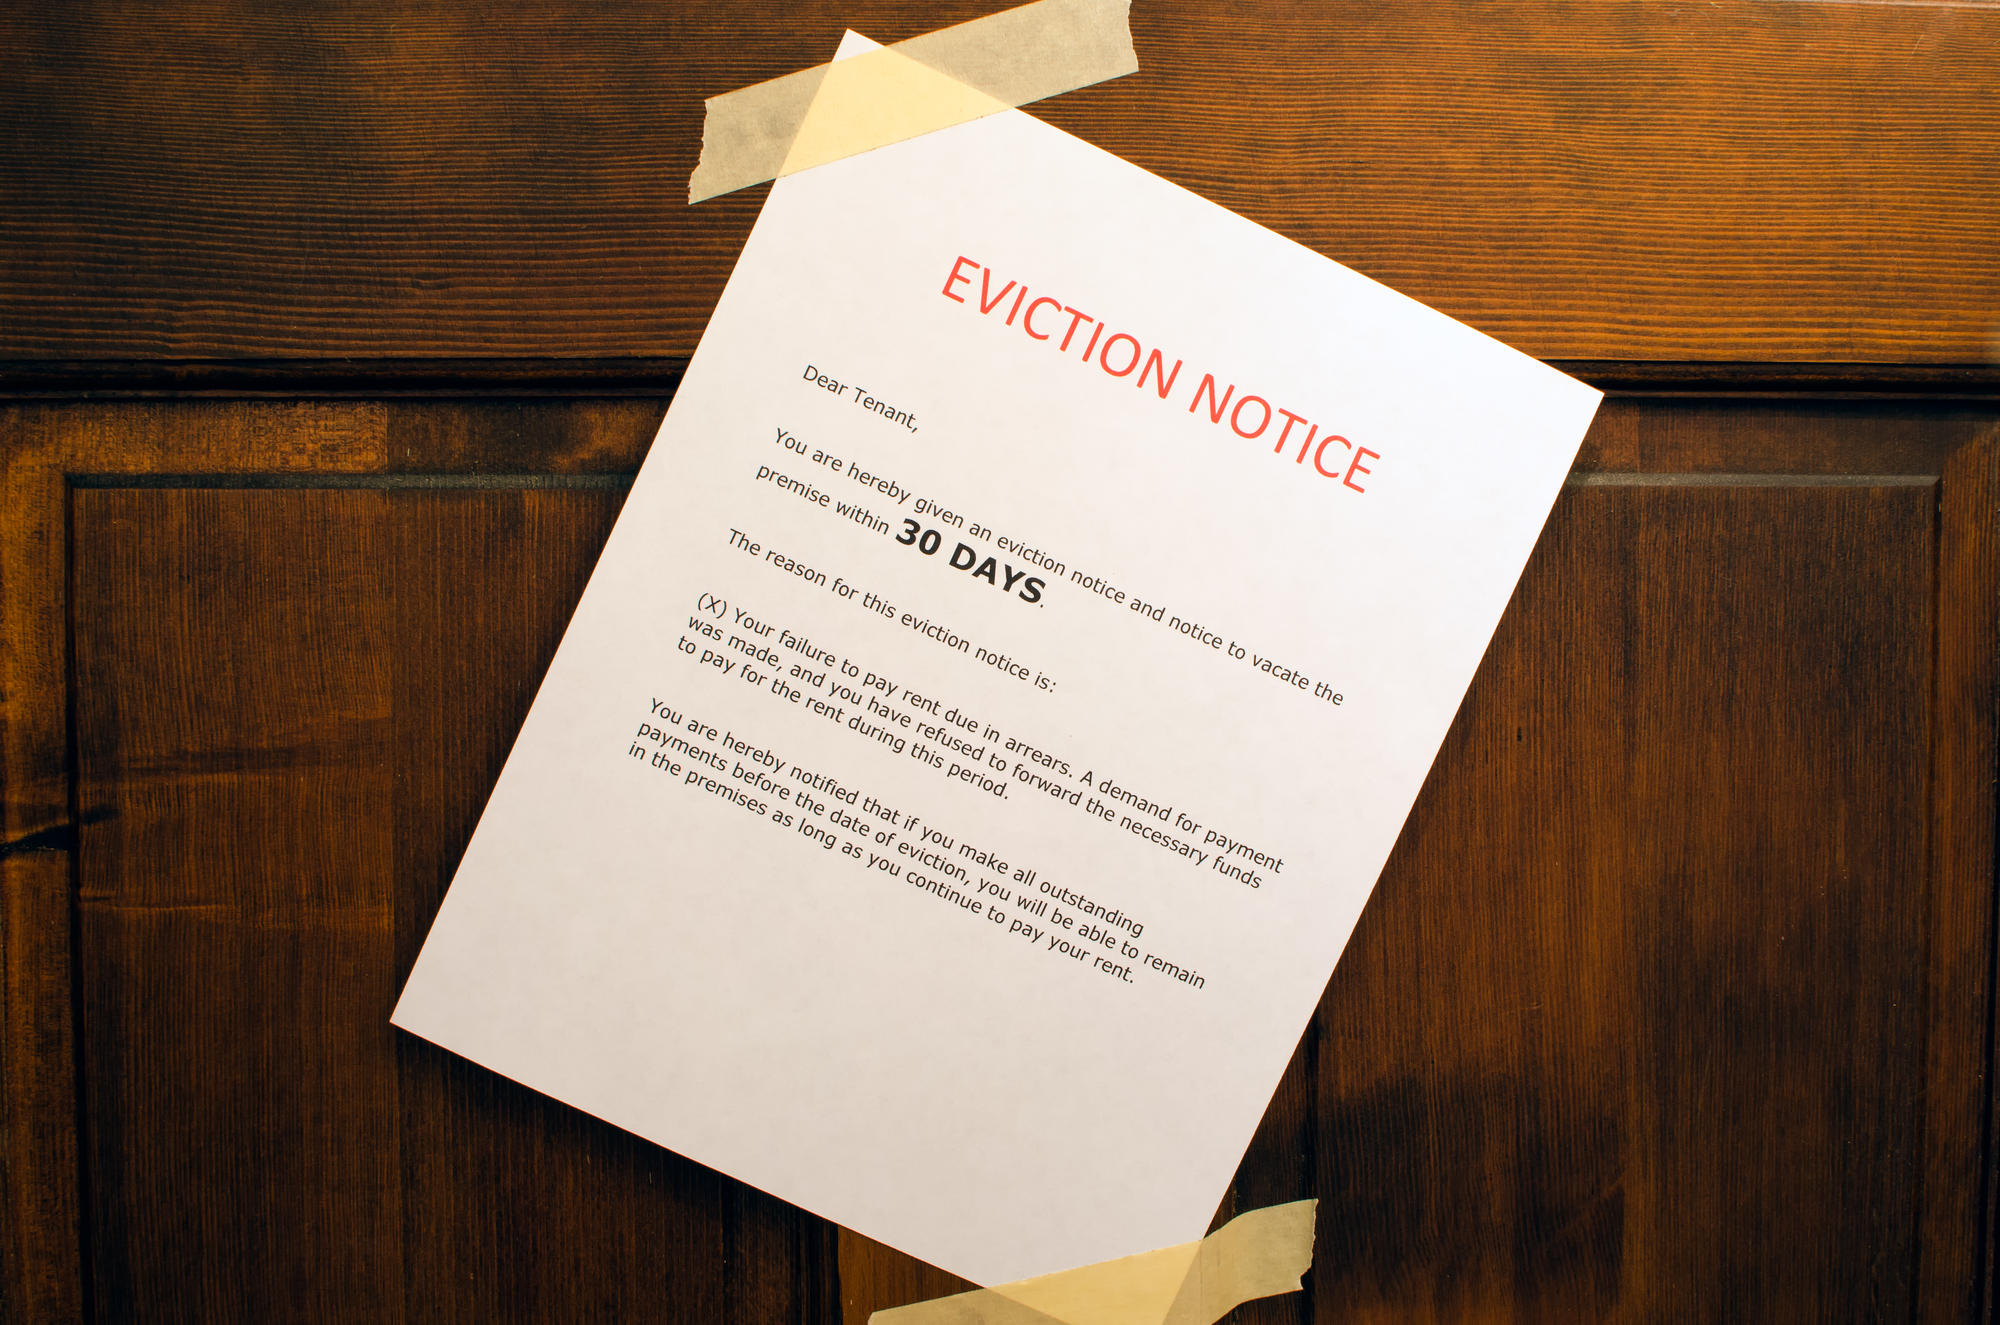 Eviction Notice On Door Greenville SC